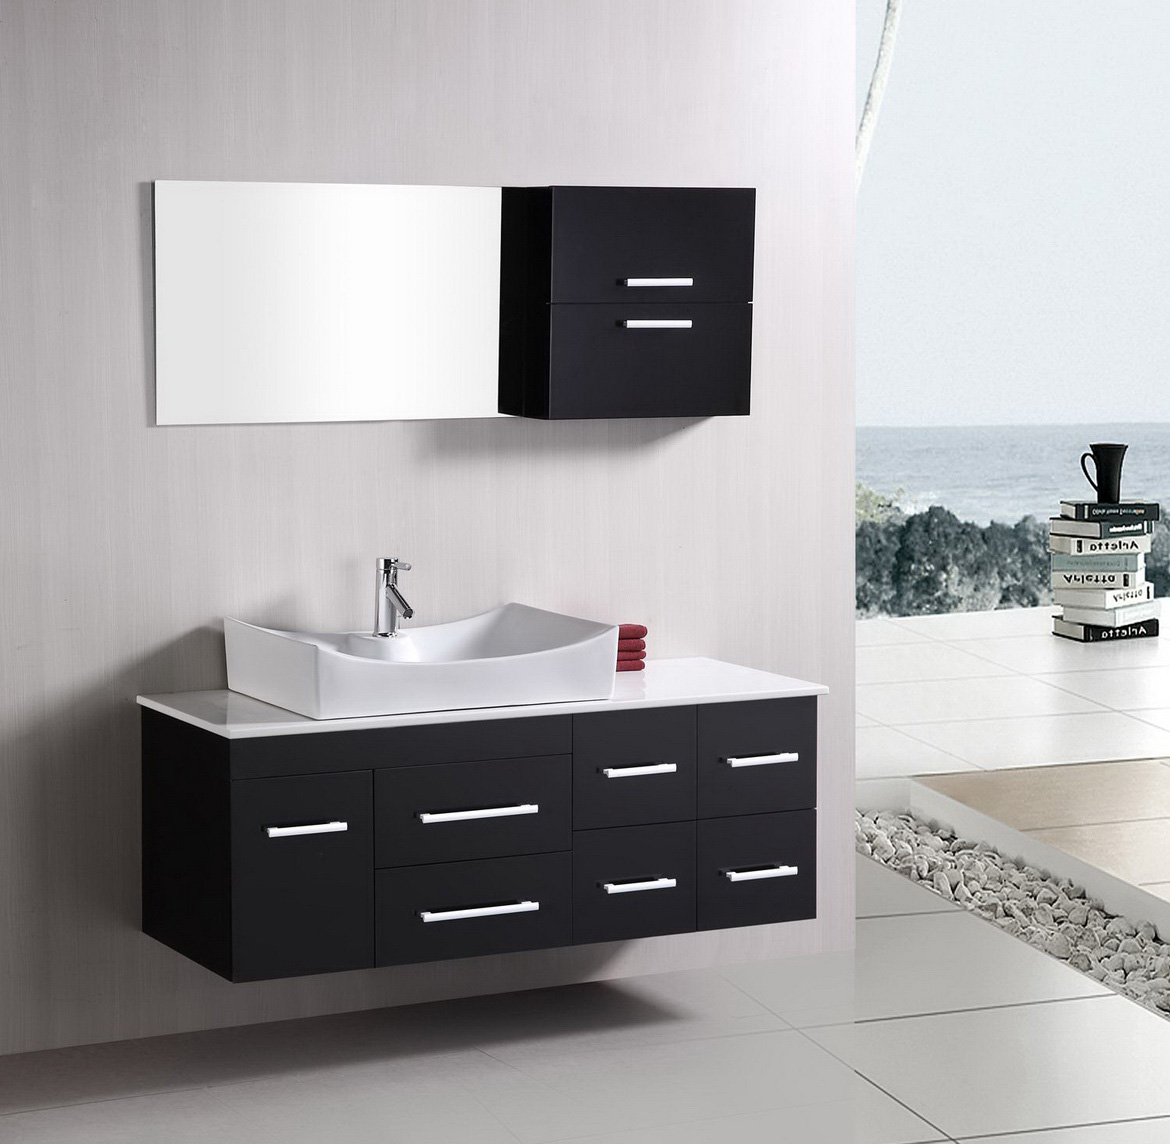 Small-Contemporary-Bathroom-Vanities-Design.